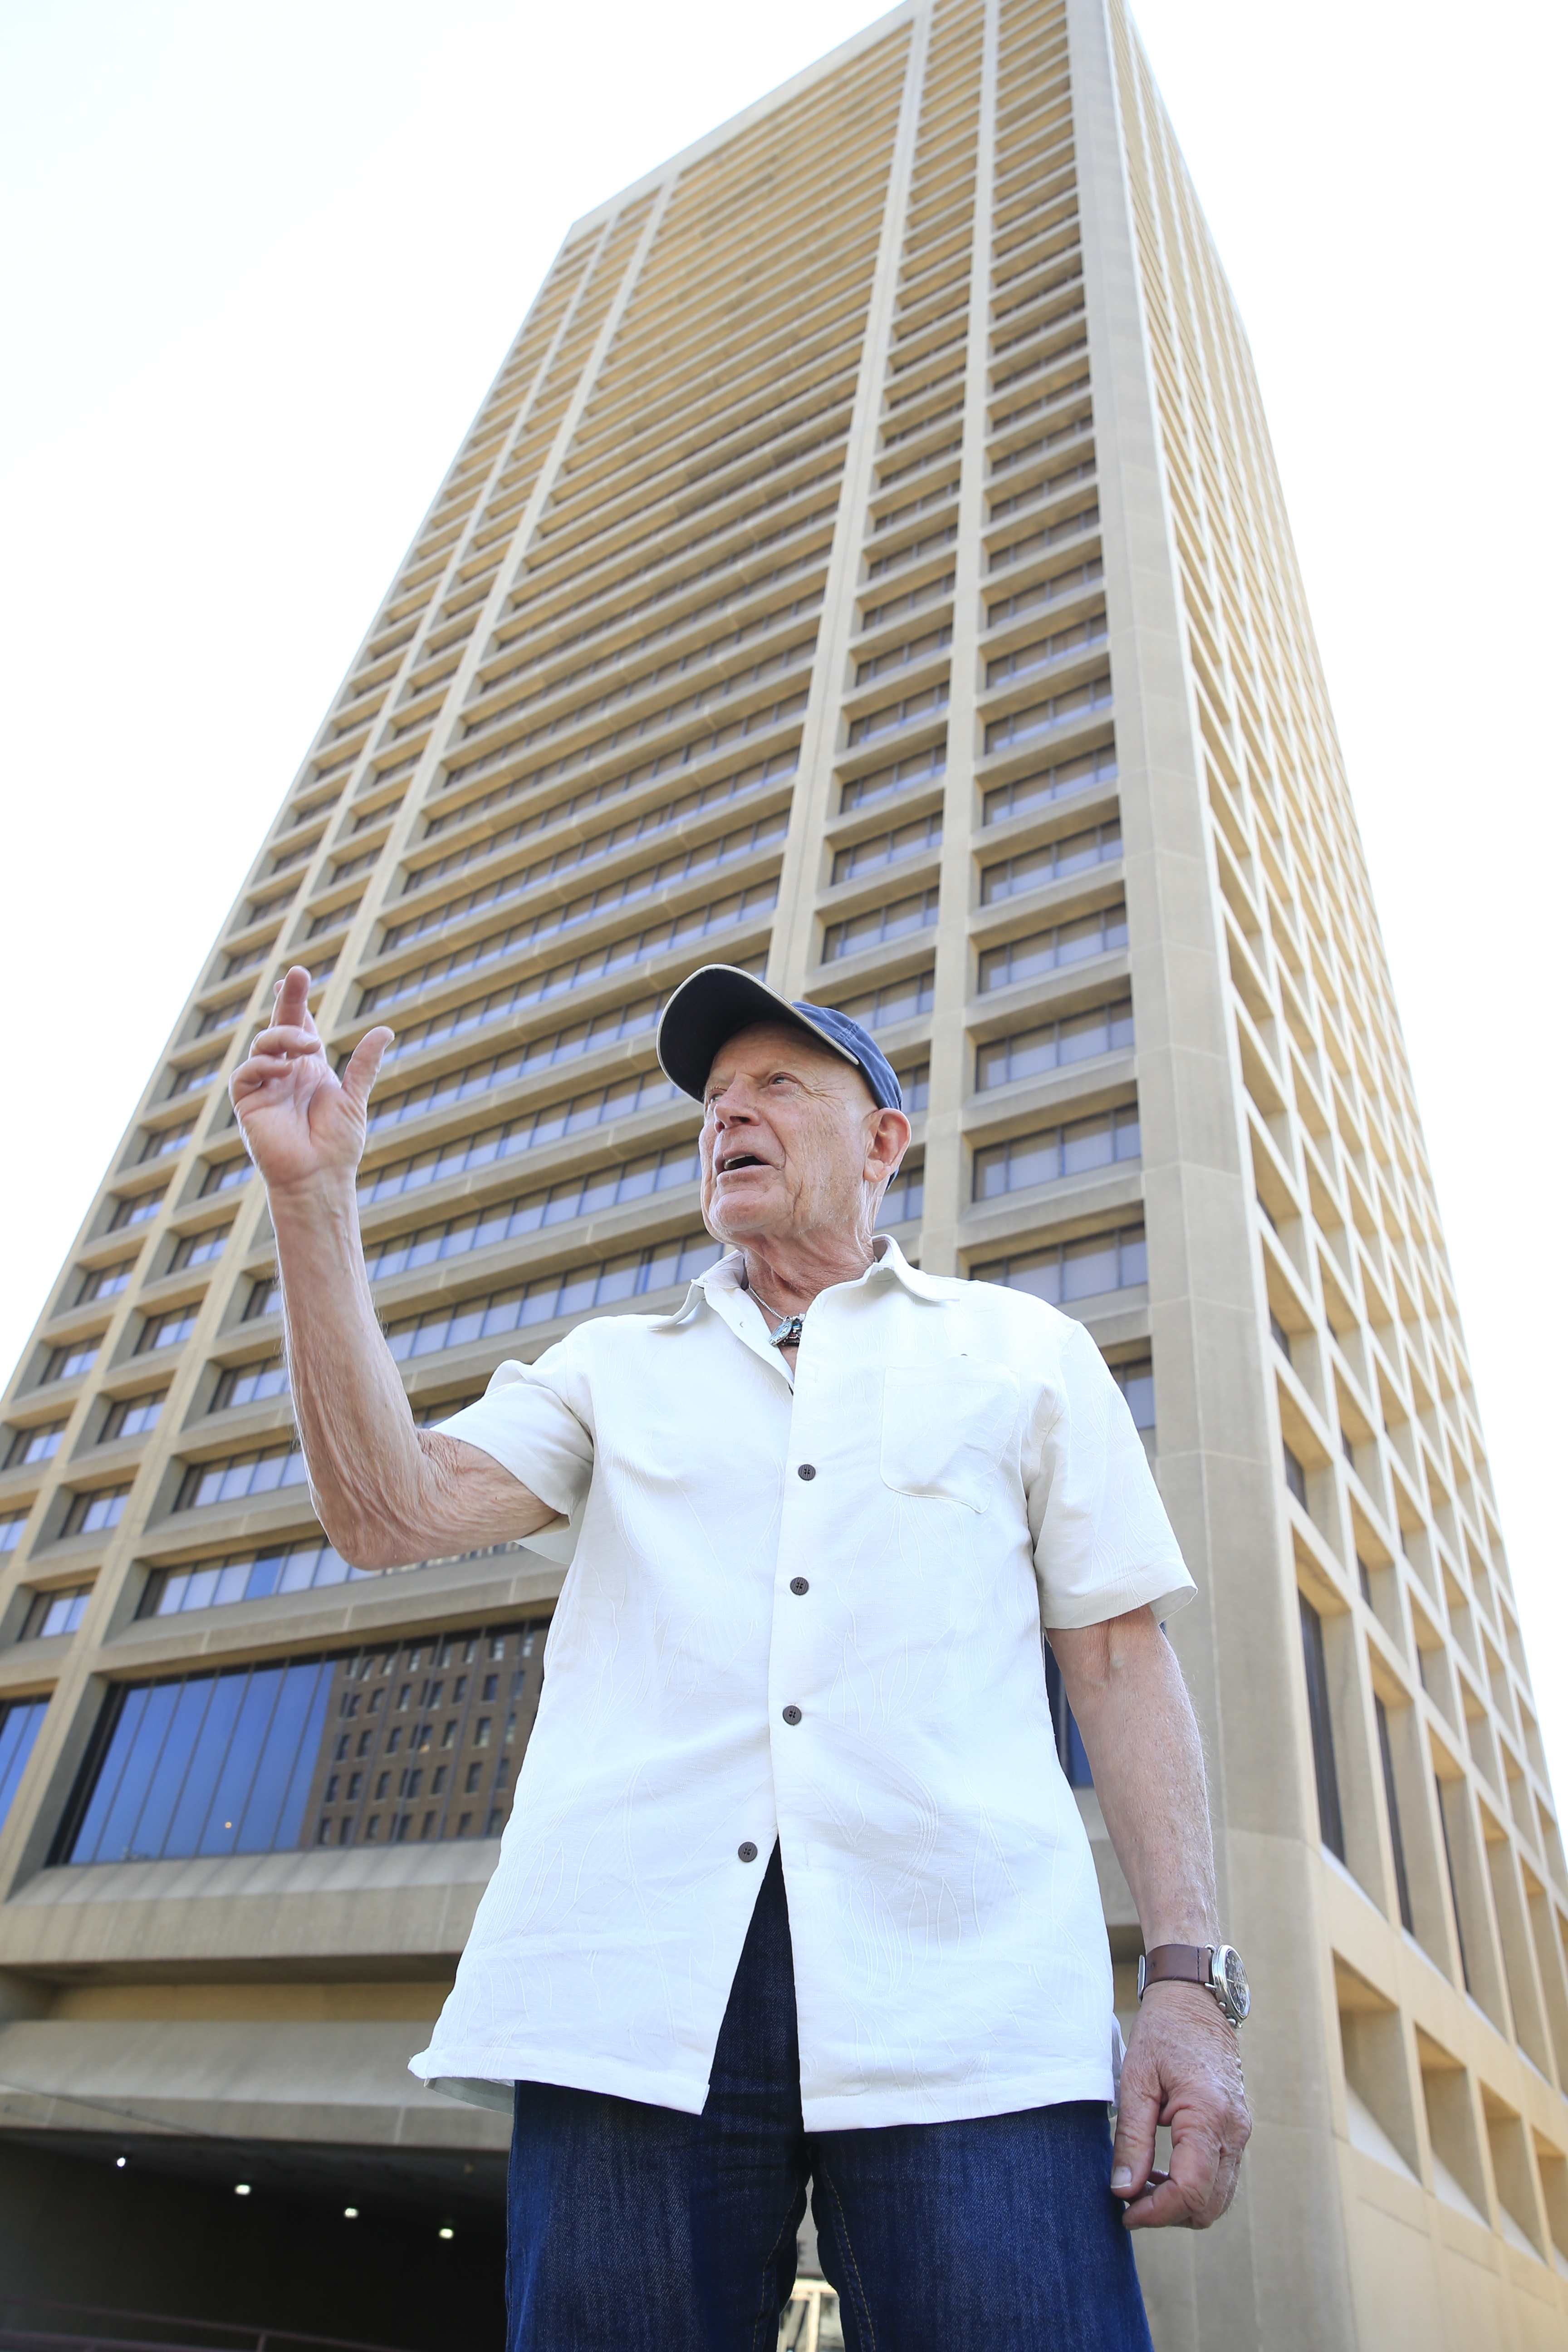 Douglas Jemal stands outside One Seneca Tower on Wednesday, Aug. 24, 2016. (Harry Scull Jr./Buffalo News)